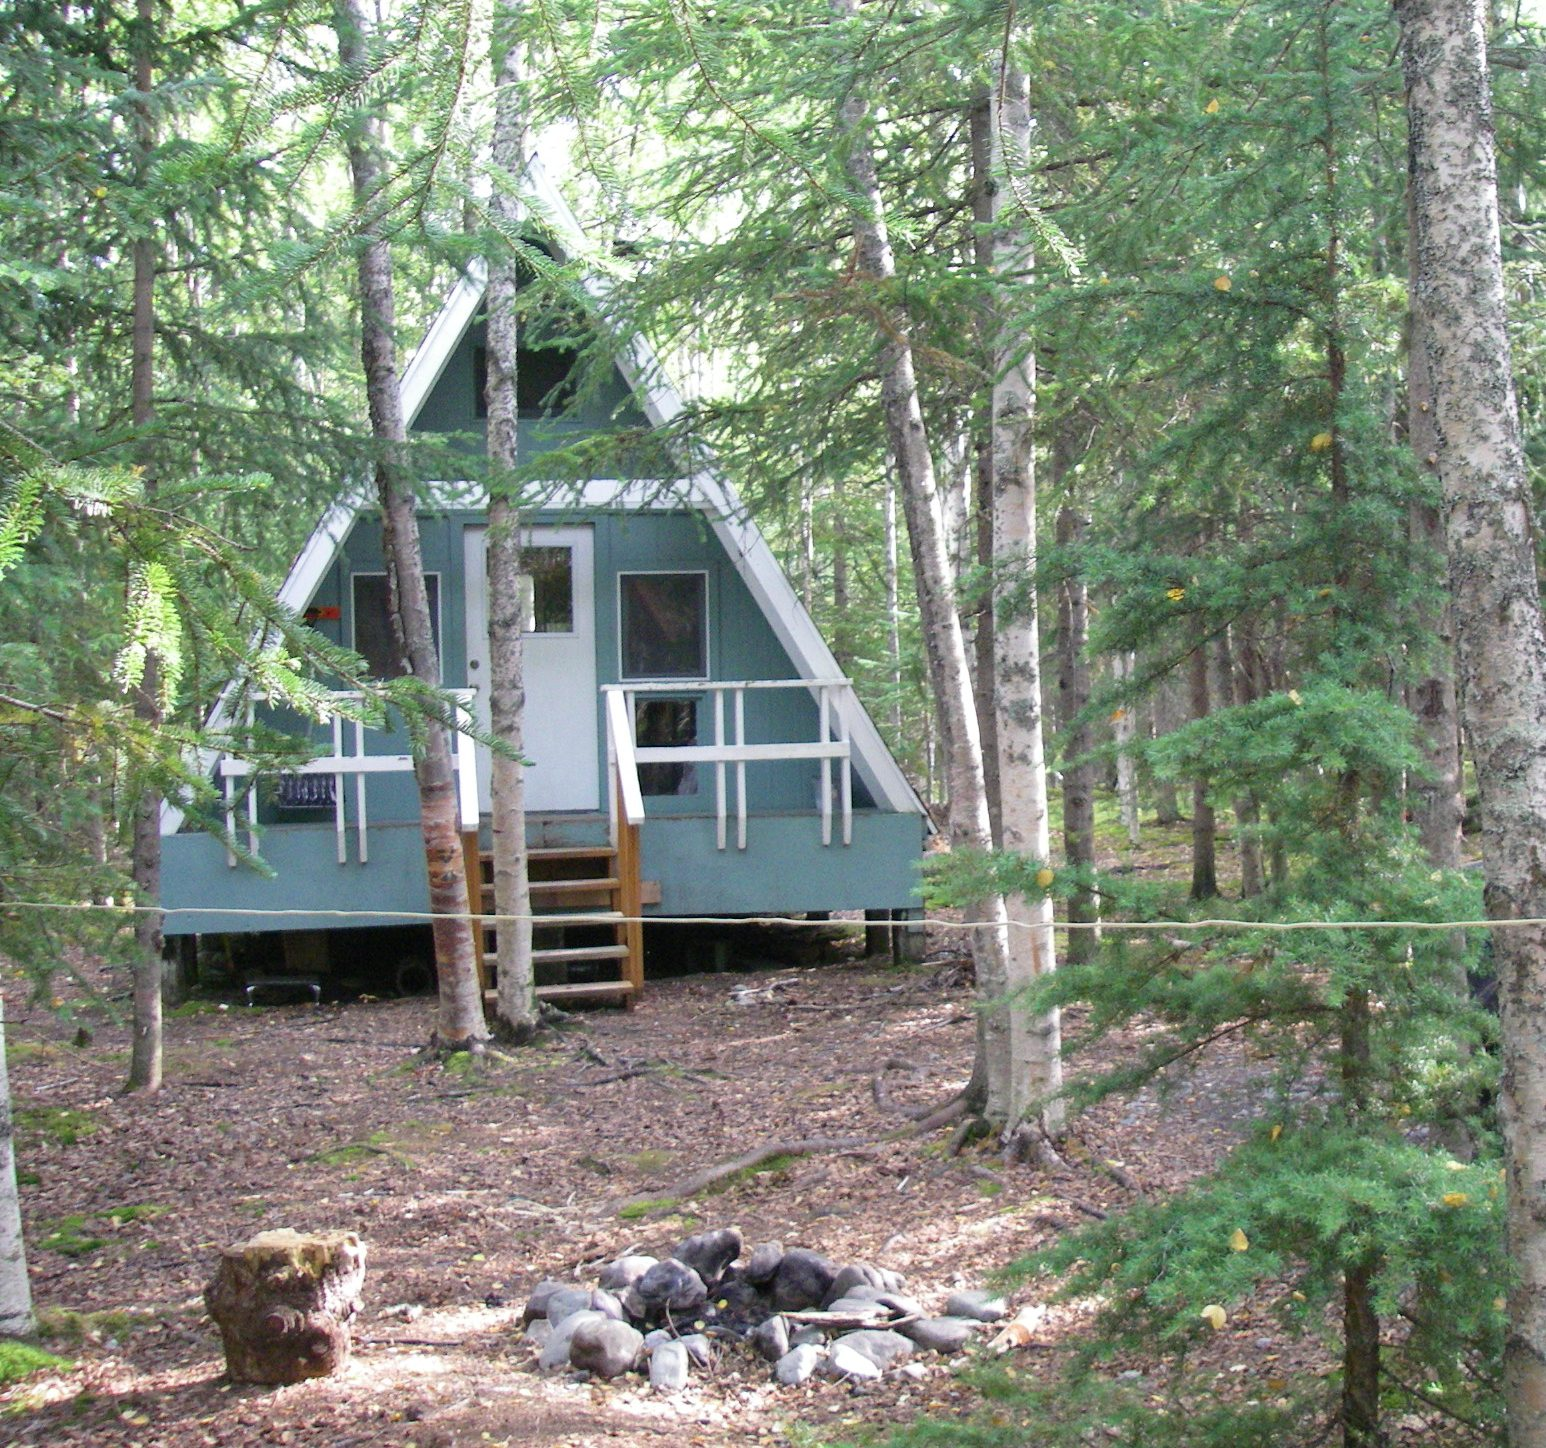 cabins south mayor rental downtown your very addition cabin the experience s alaska in own rentals